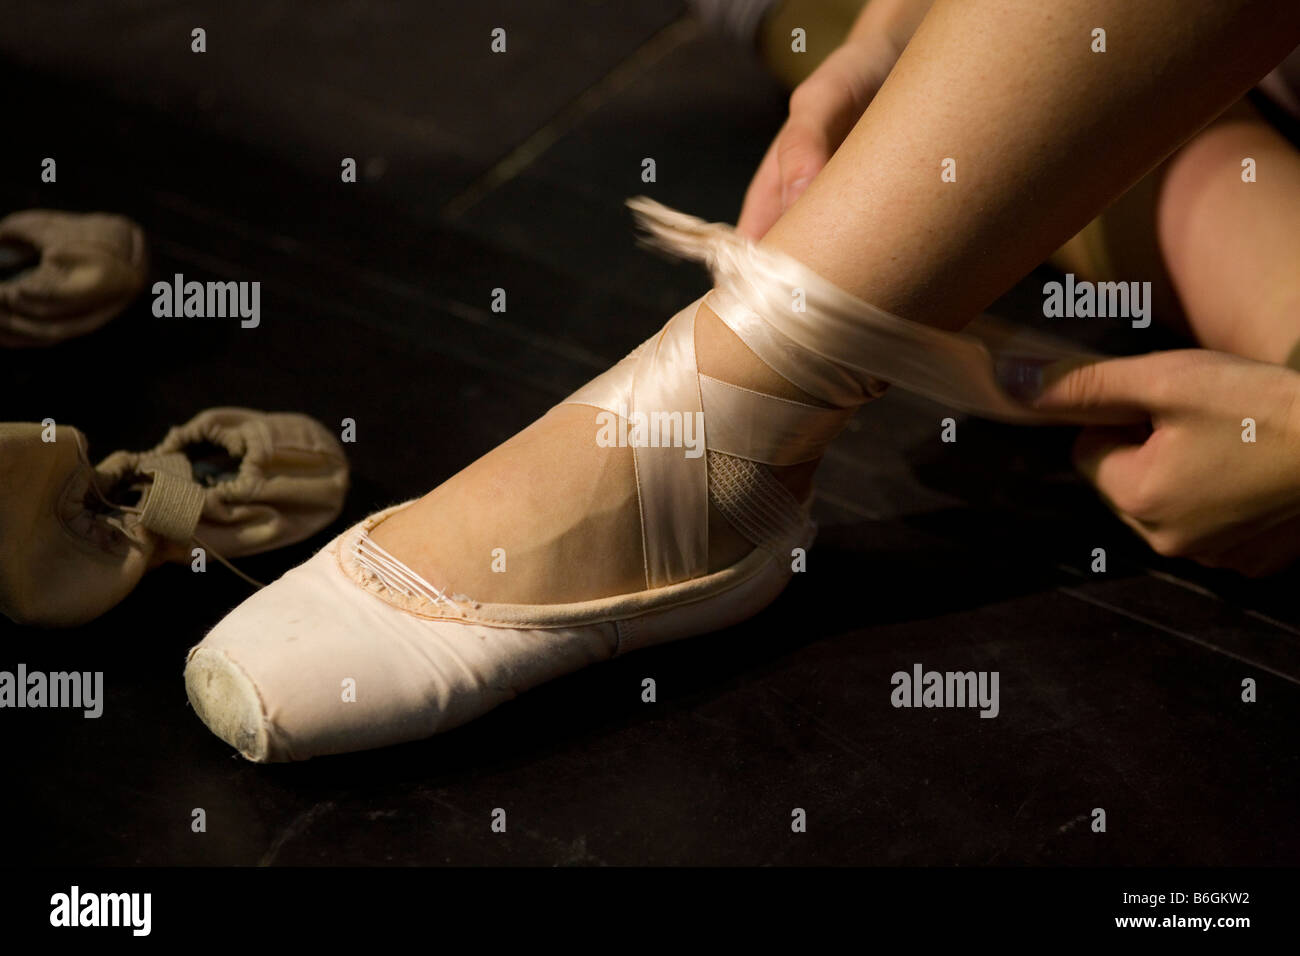 A ballerina from the English National Ballet company back stage of Sleeping Beauty production - Stock Image